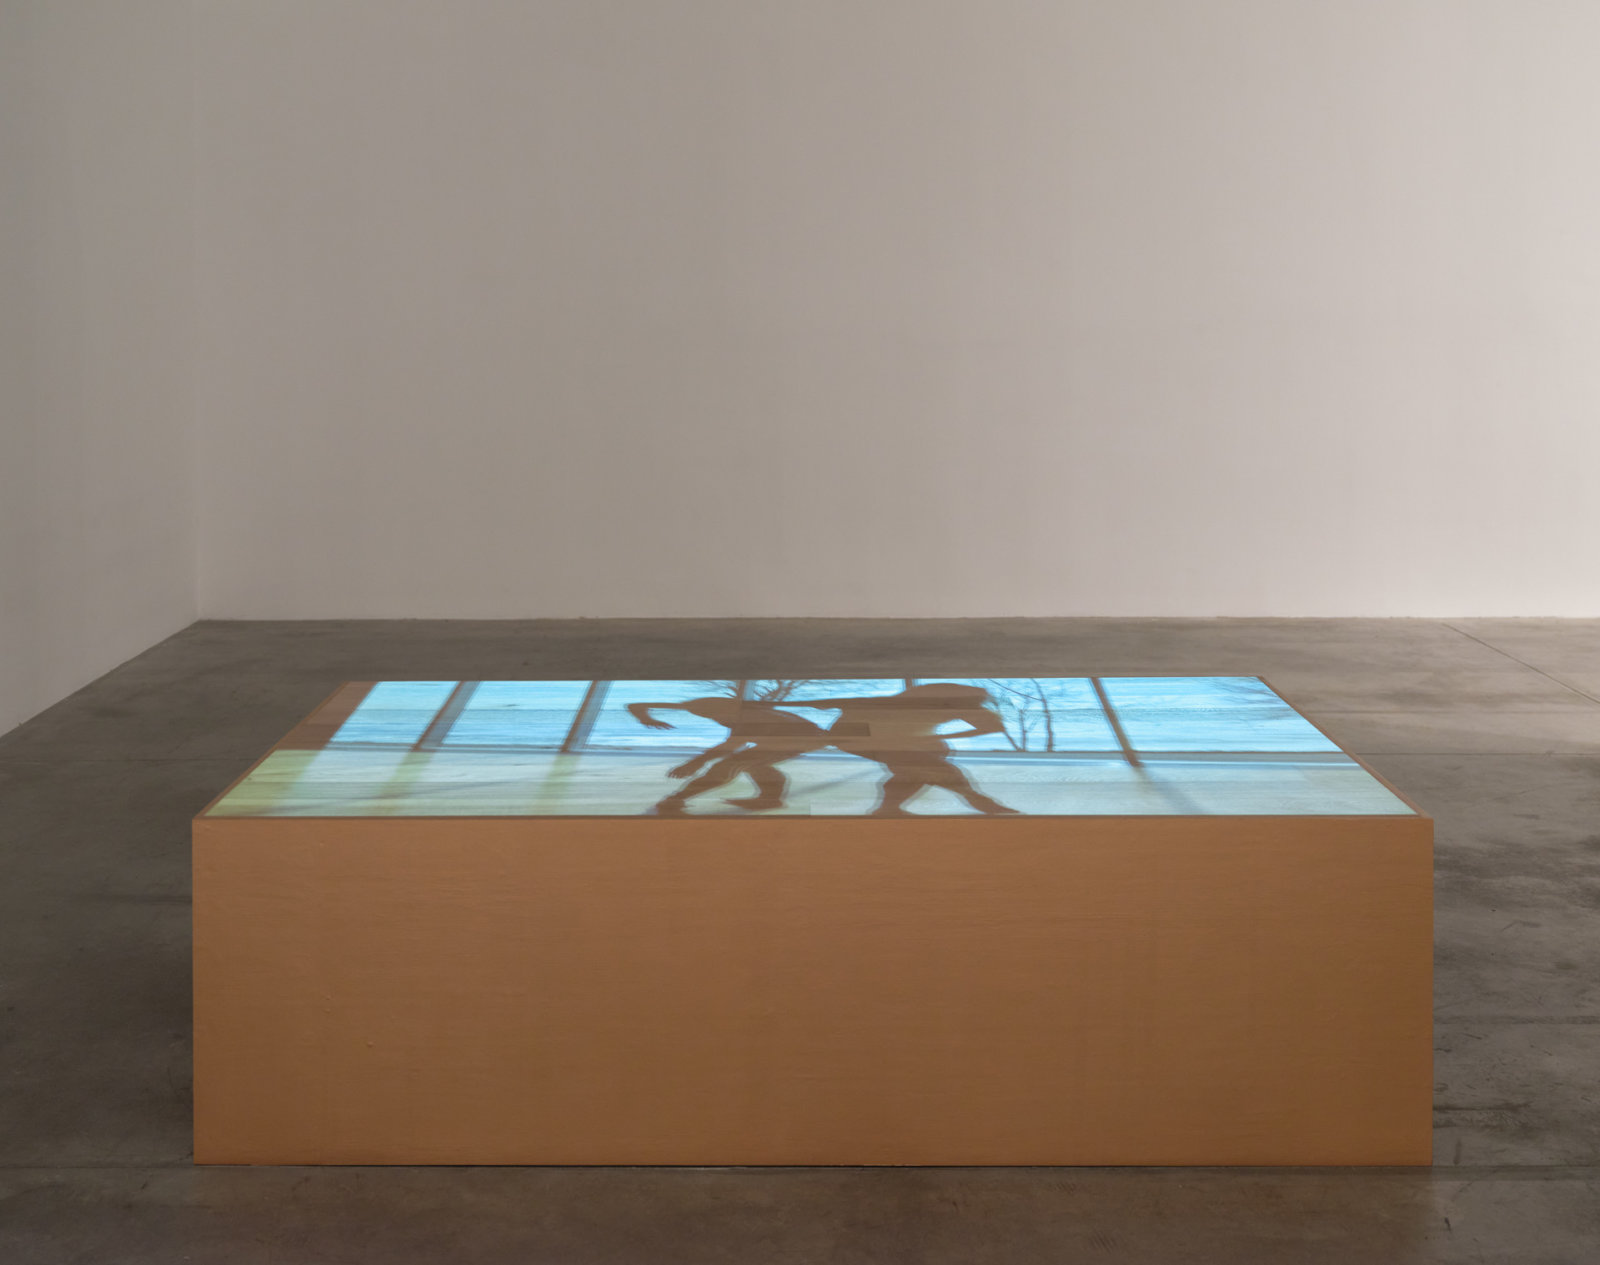 Tanya Lukin Linklater, We wear one another, 2019⁠, site-specific performance projected on wood plinth, 48 x 24 x 85 in. (122 x 61 x 216 cm), 25 minutes, 18 seconds. Installation view, Soundings, Morris and Helen Belkin Art Gallery, Vancouver, 2020